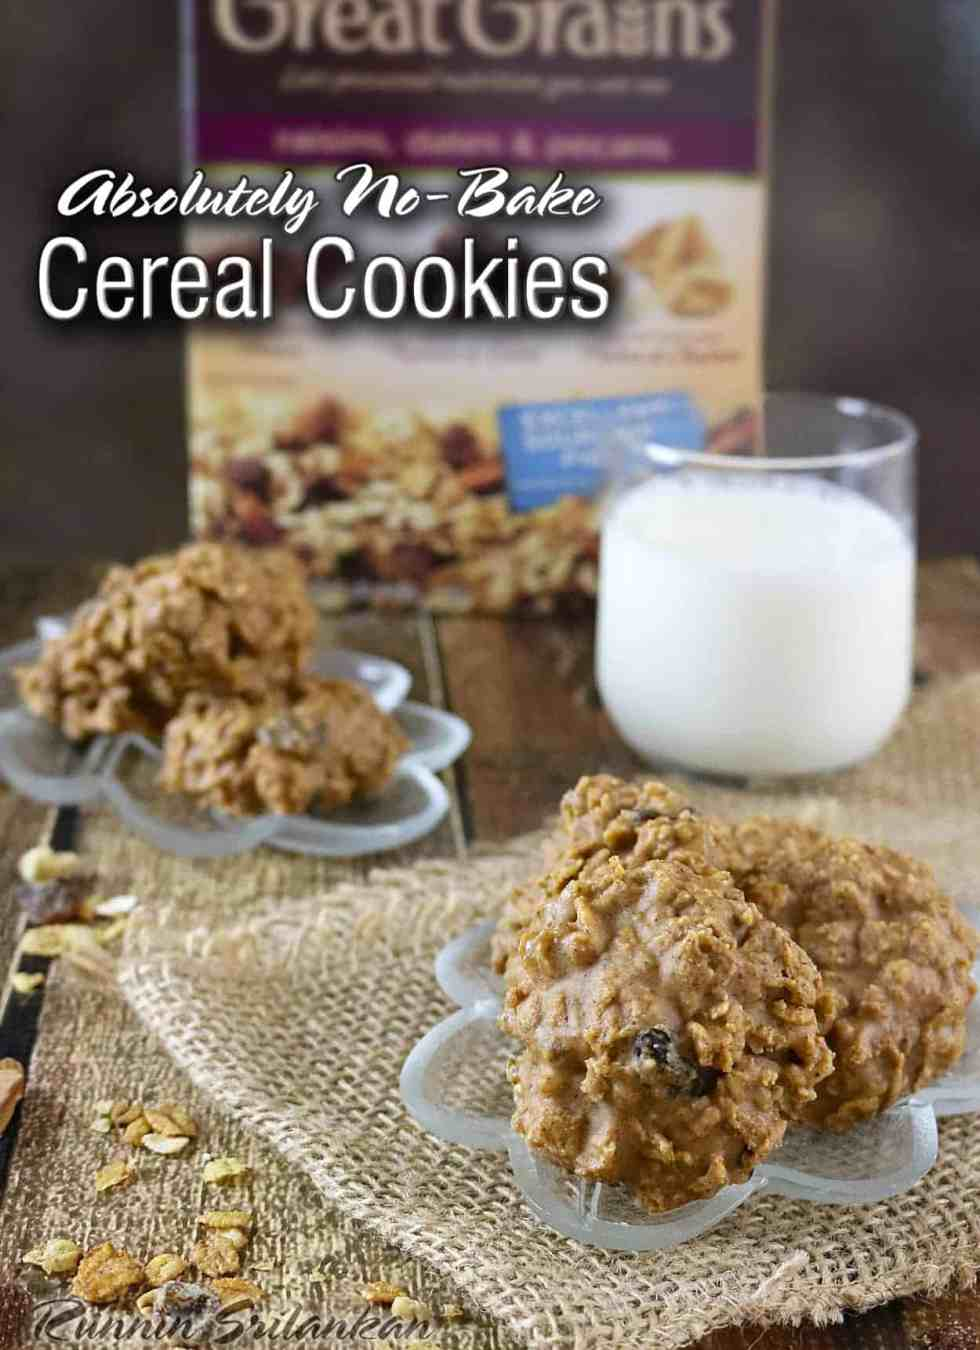 No-Bake Cereal Cookies #RealDelicious #CerealAnytime